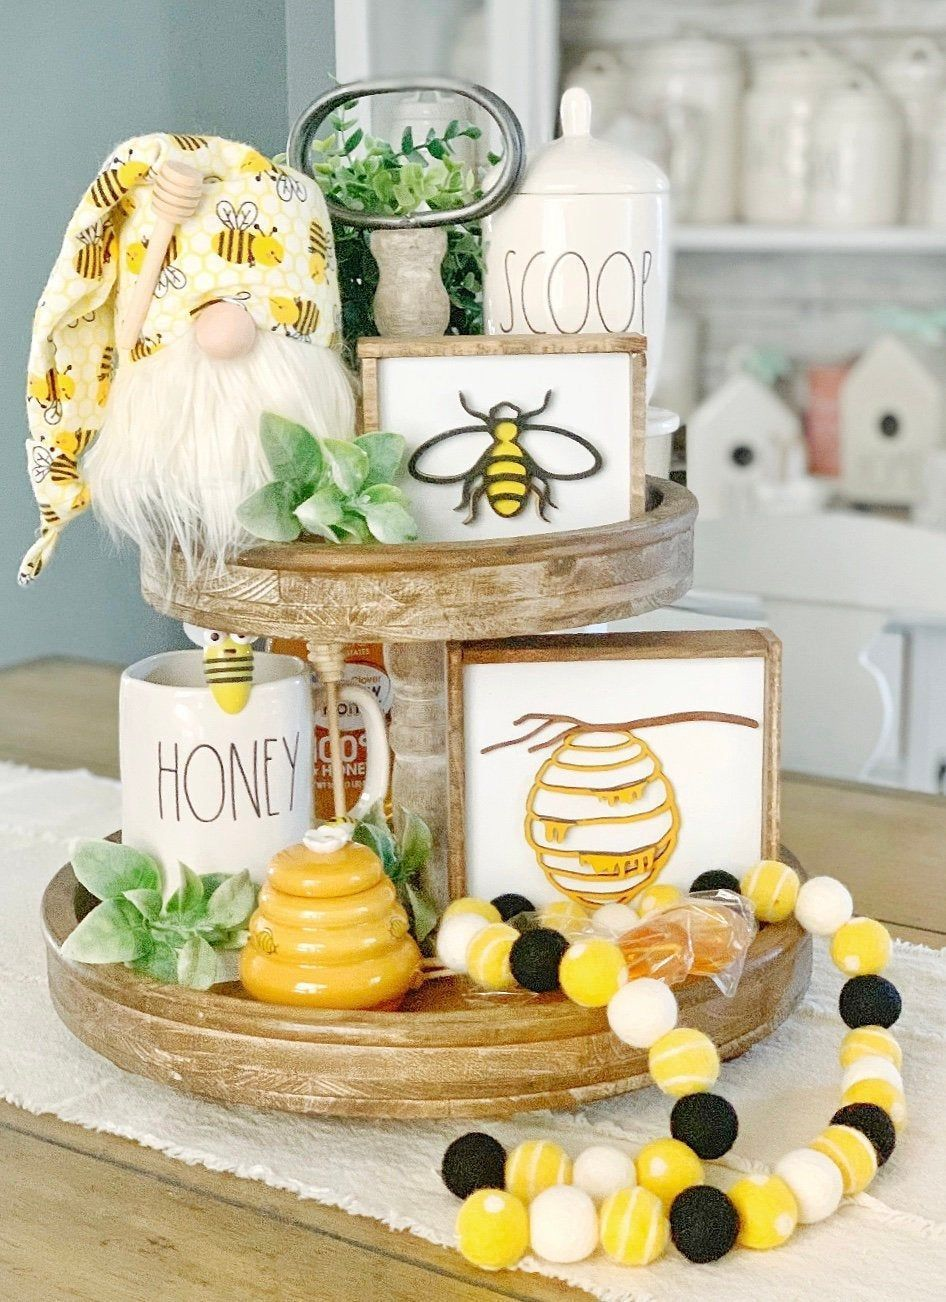 Bee signs / honey signs / bee decor / 3D signs / summer signs / spring signs / tiered tray decor / rae Dunn decor / coffee bar / bee decor